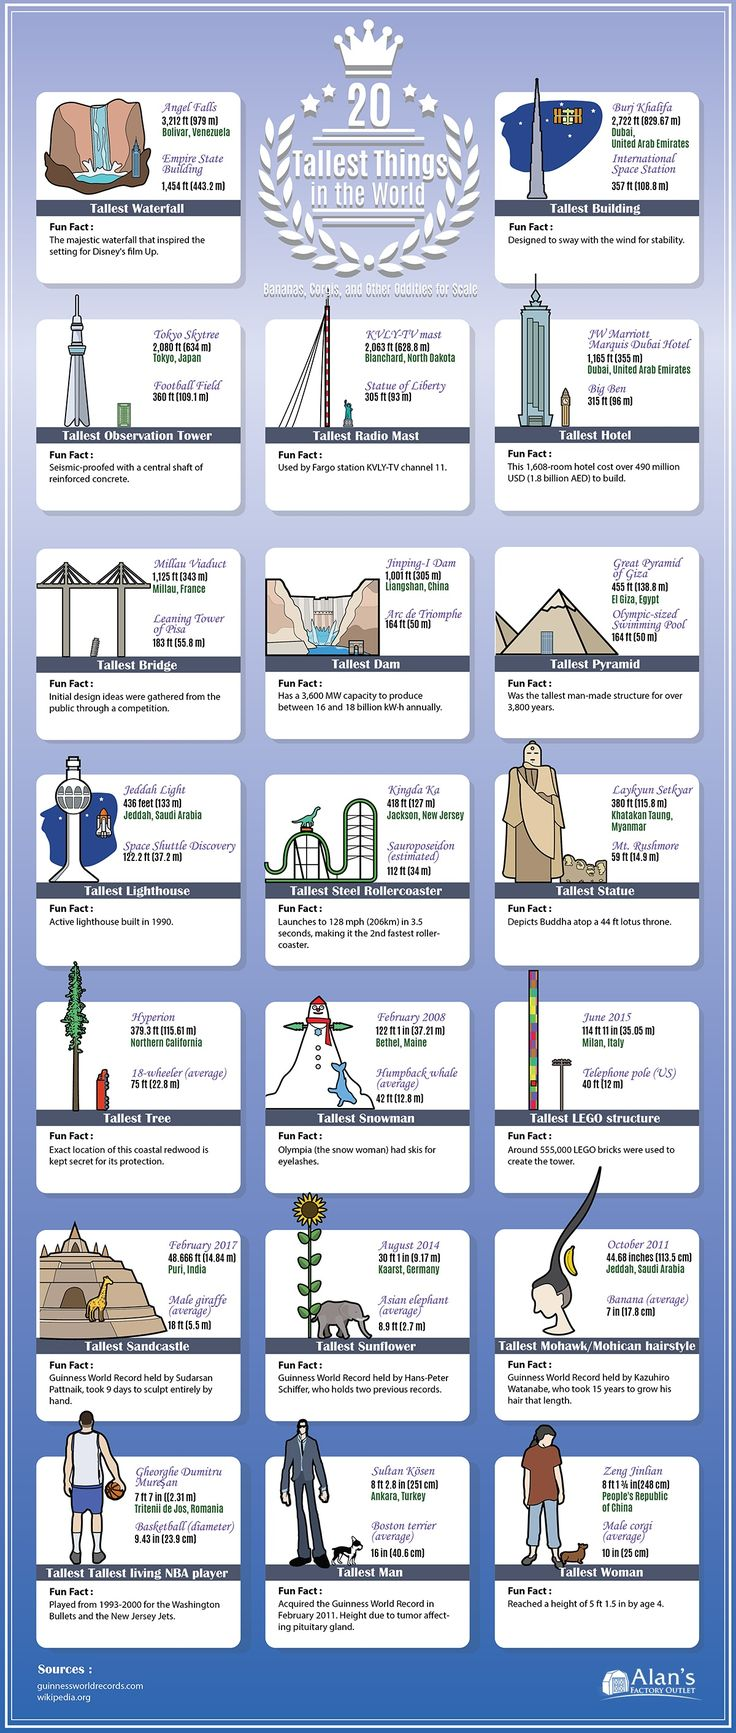 Learn more about some of the tallest things in the world, both natural and man-made!